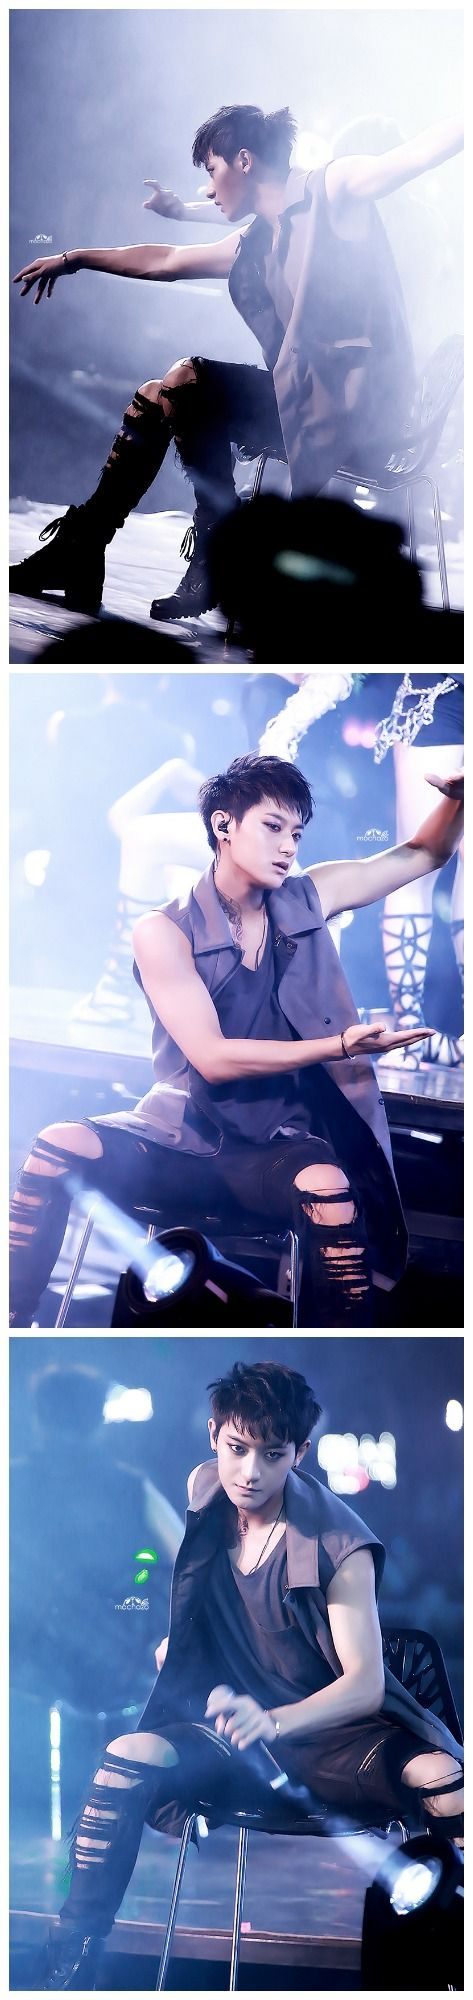 tao ~ He's a rather elegant boy. But I've seen his moves so don't tell him I said that.